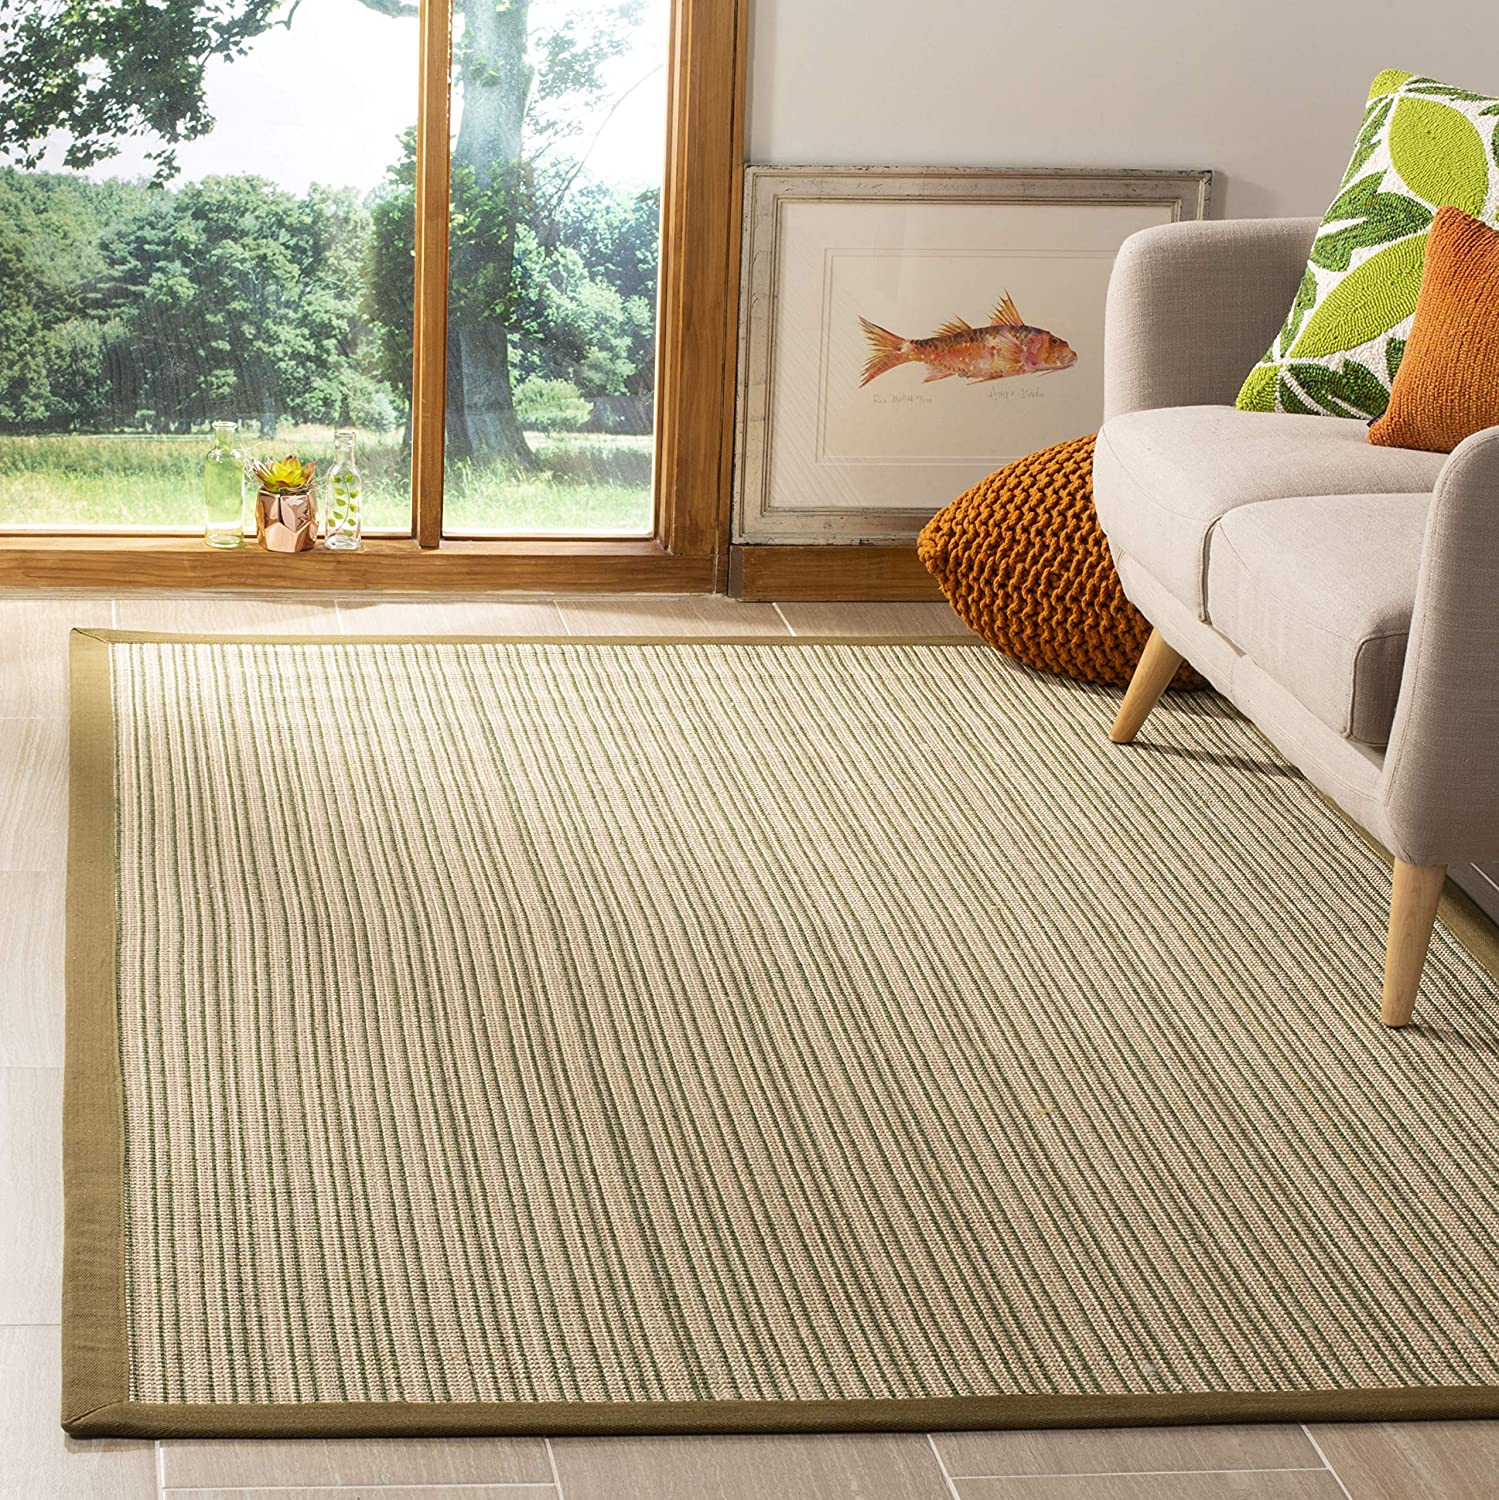 Safavieh Max 46% OFF Natural Fiber Collection NF132A Sisal Border Ranking TOP8 Are Stripe